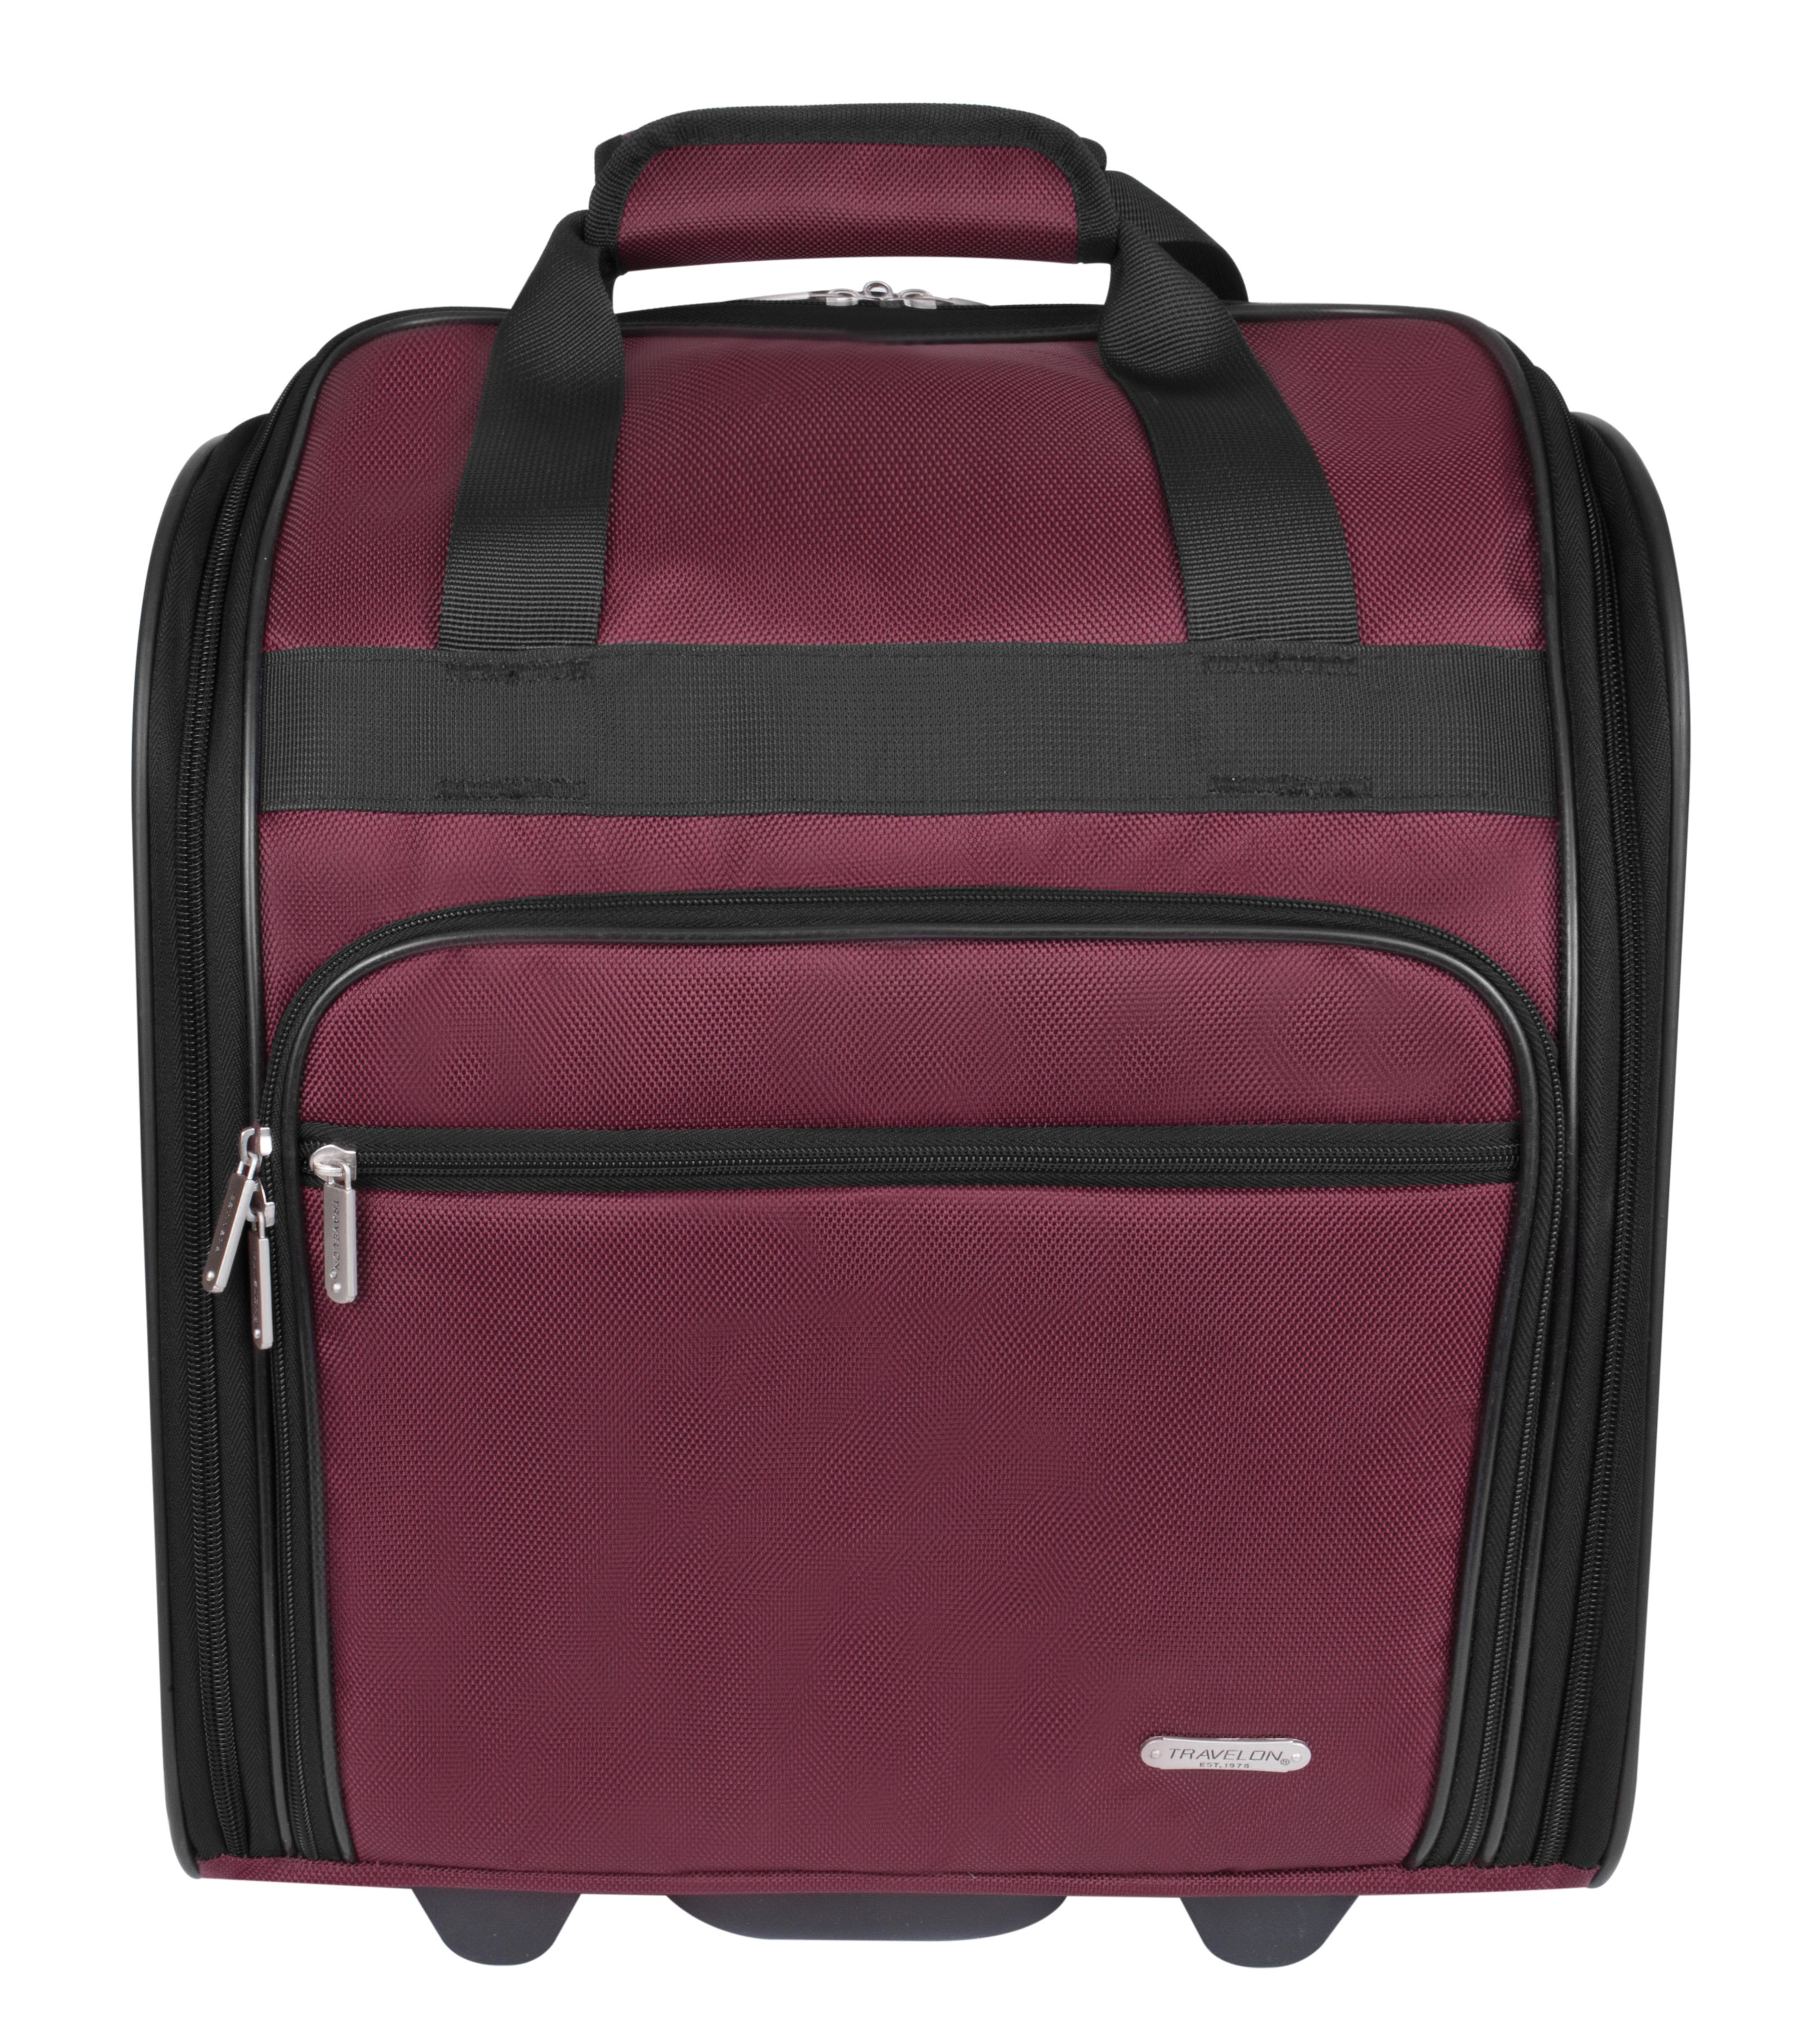 Travelon 15 inch Wheeled Underseat Carry-On